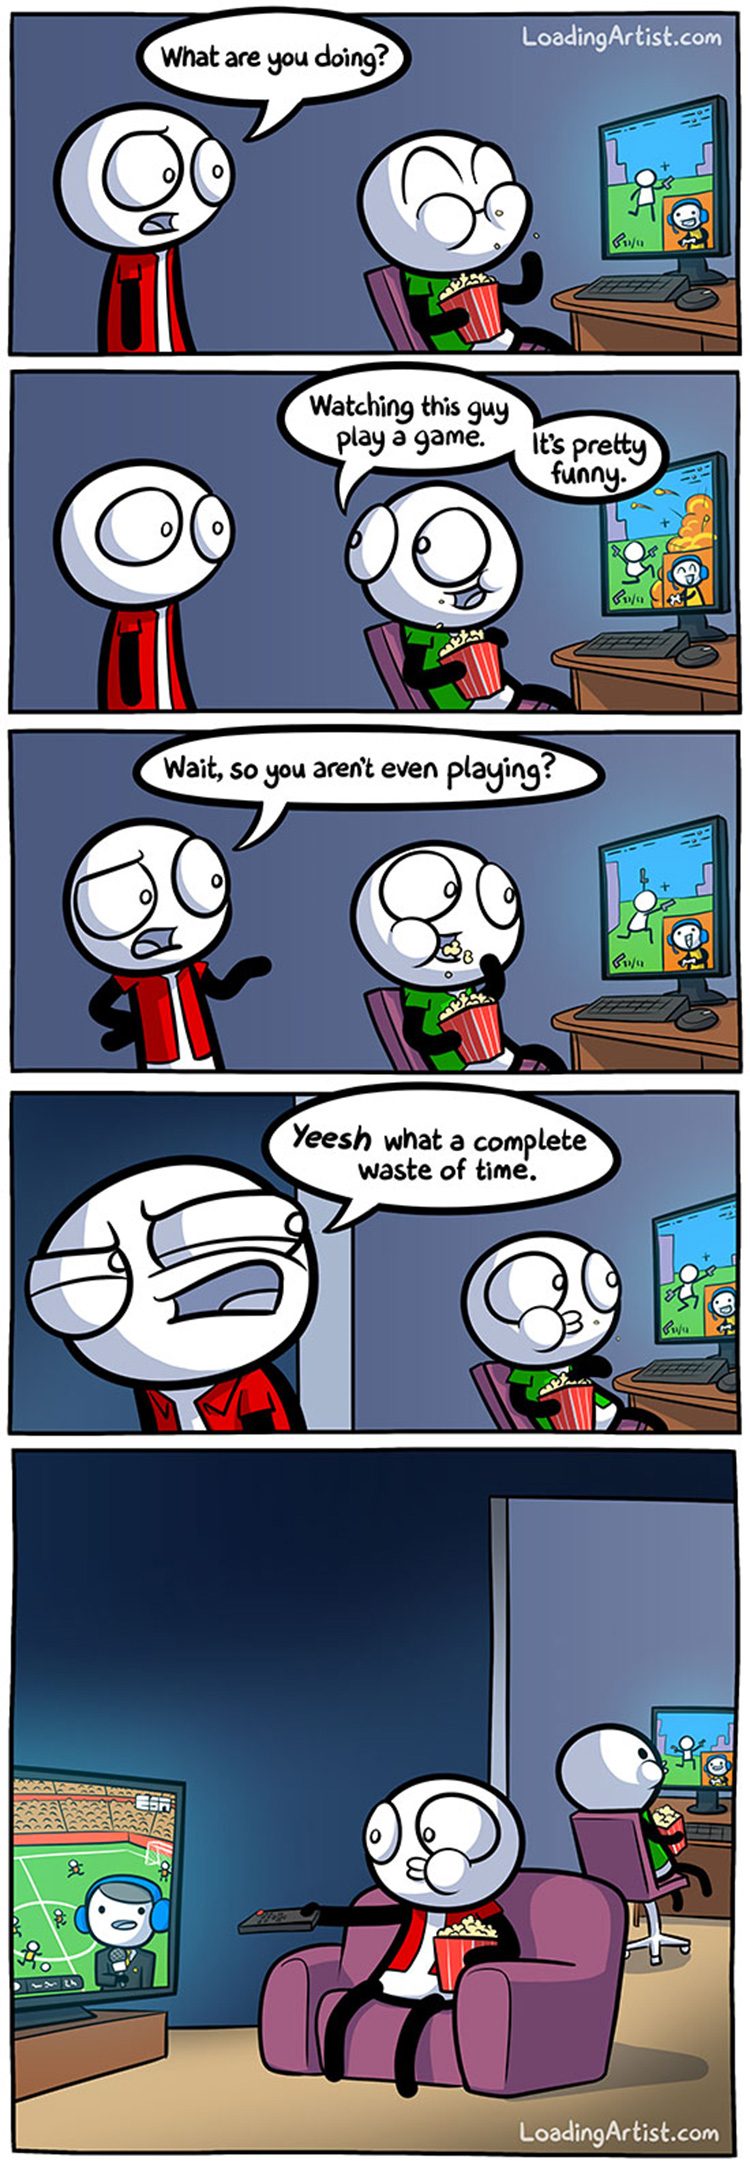 Waste of Time by Loading Artist